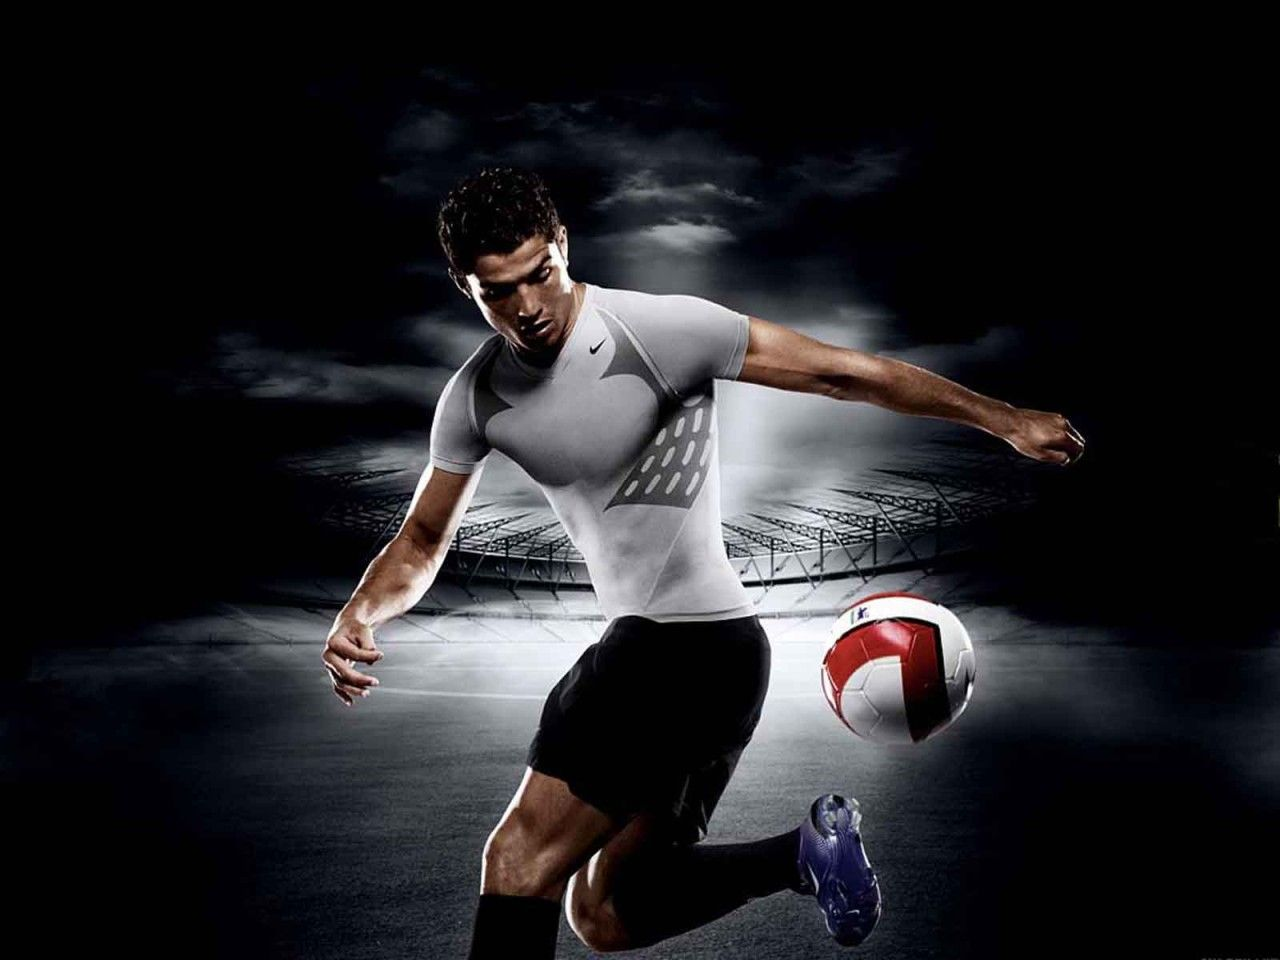 Soccer Ideas These Are Position Reference Only Ronaldo Wallpapers Cristiano Ronaldo Wallpapers Cristiano Ronaldo